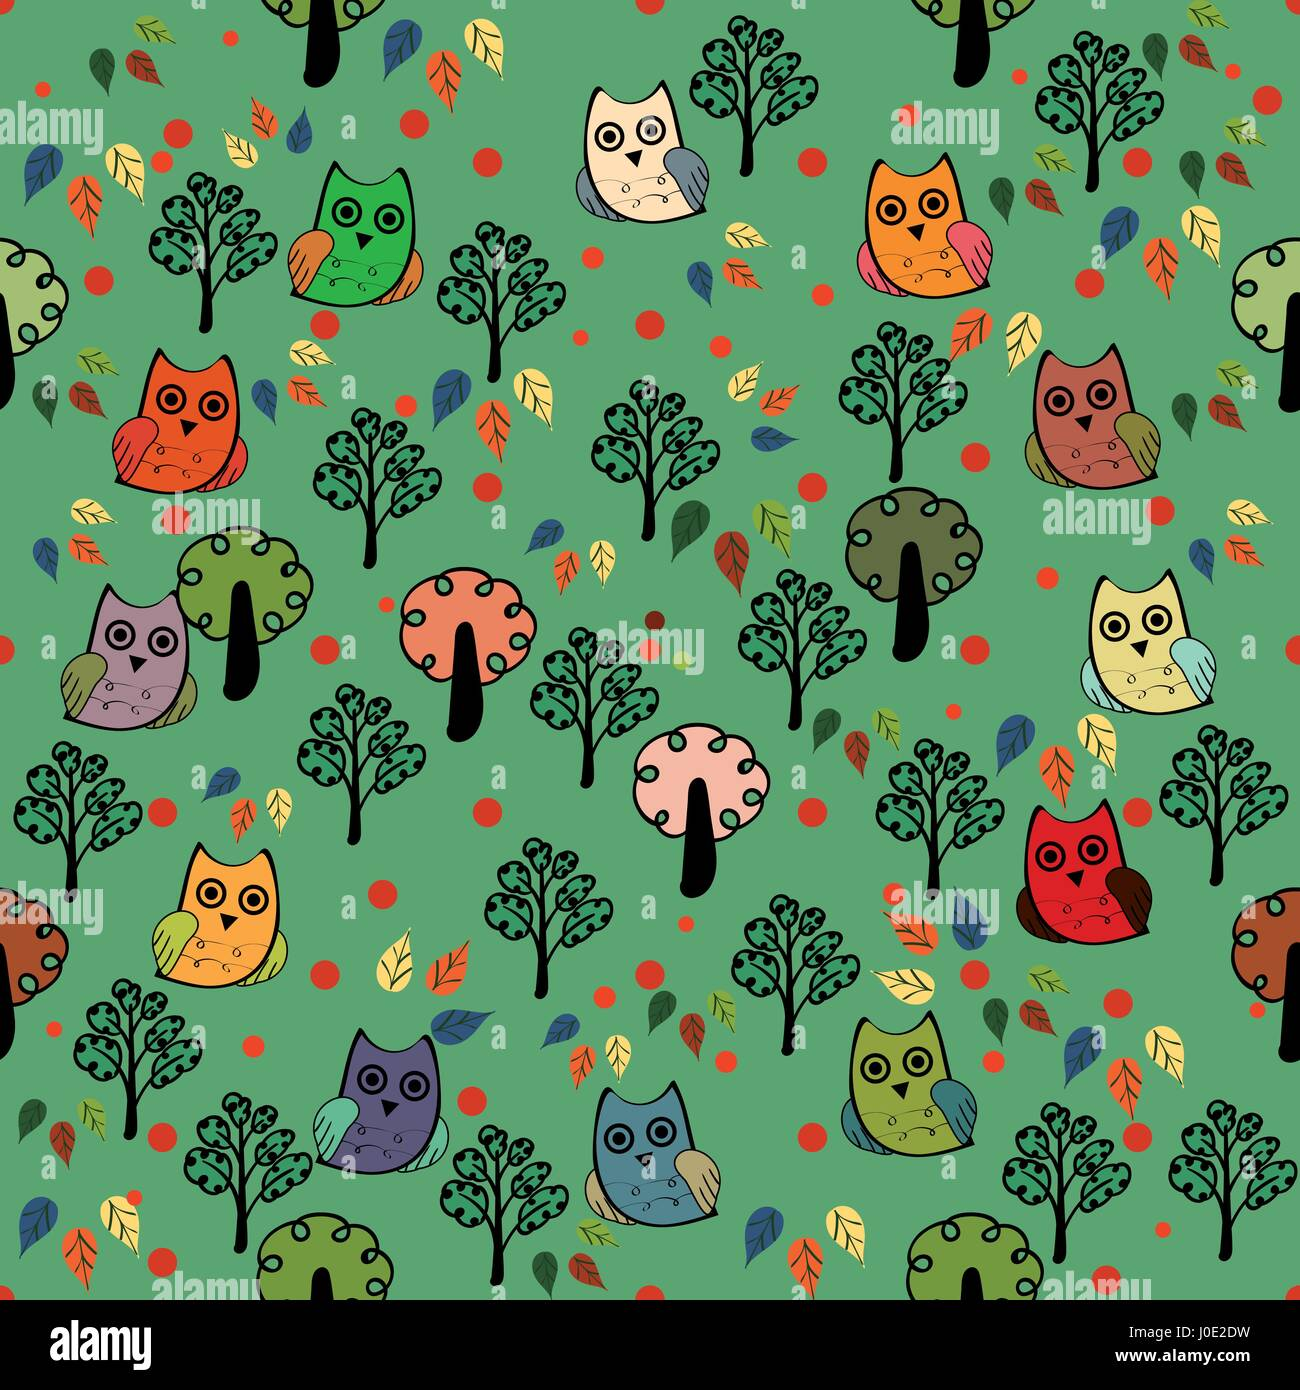 Owls forest vector seamless pattern - Stock Vector